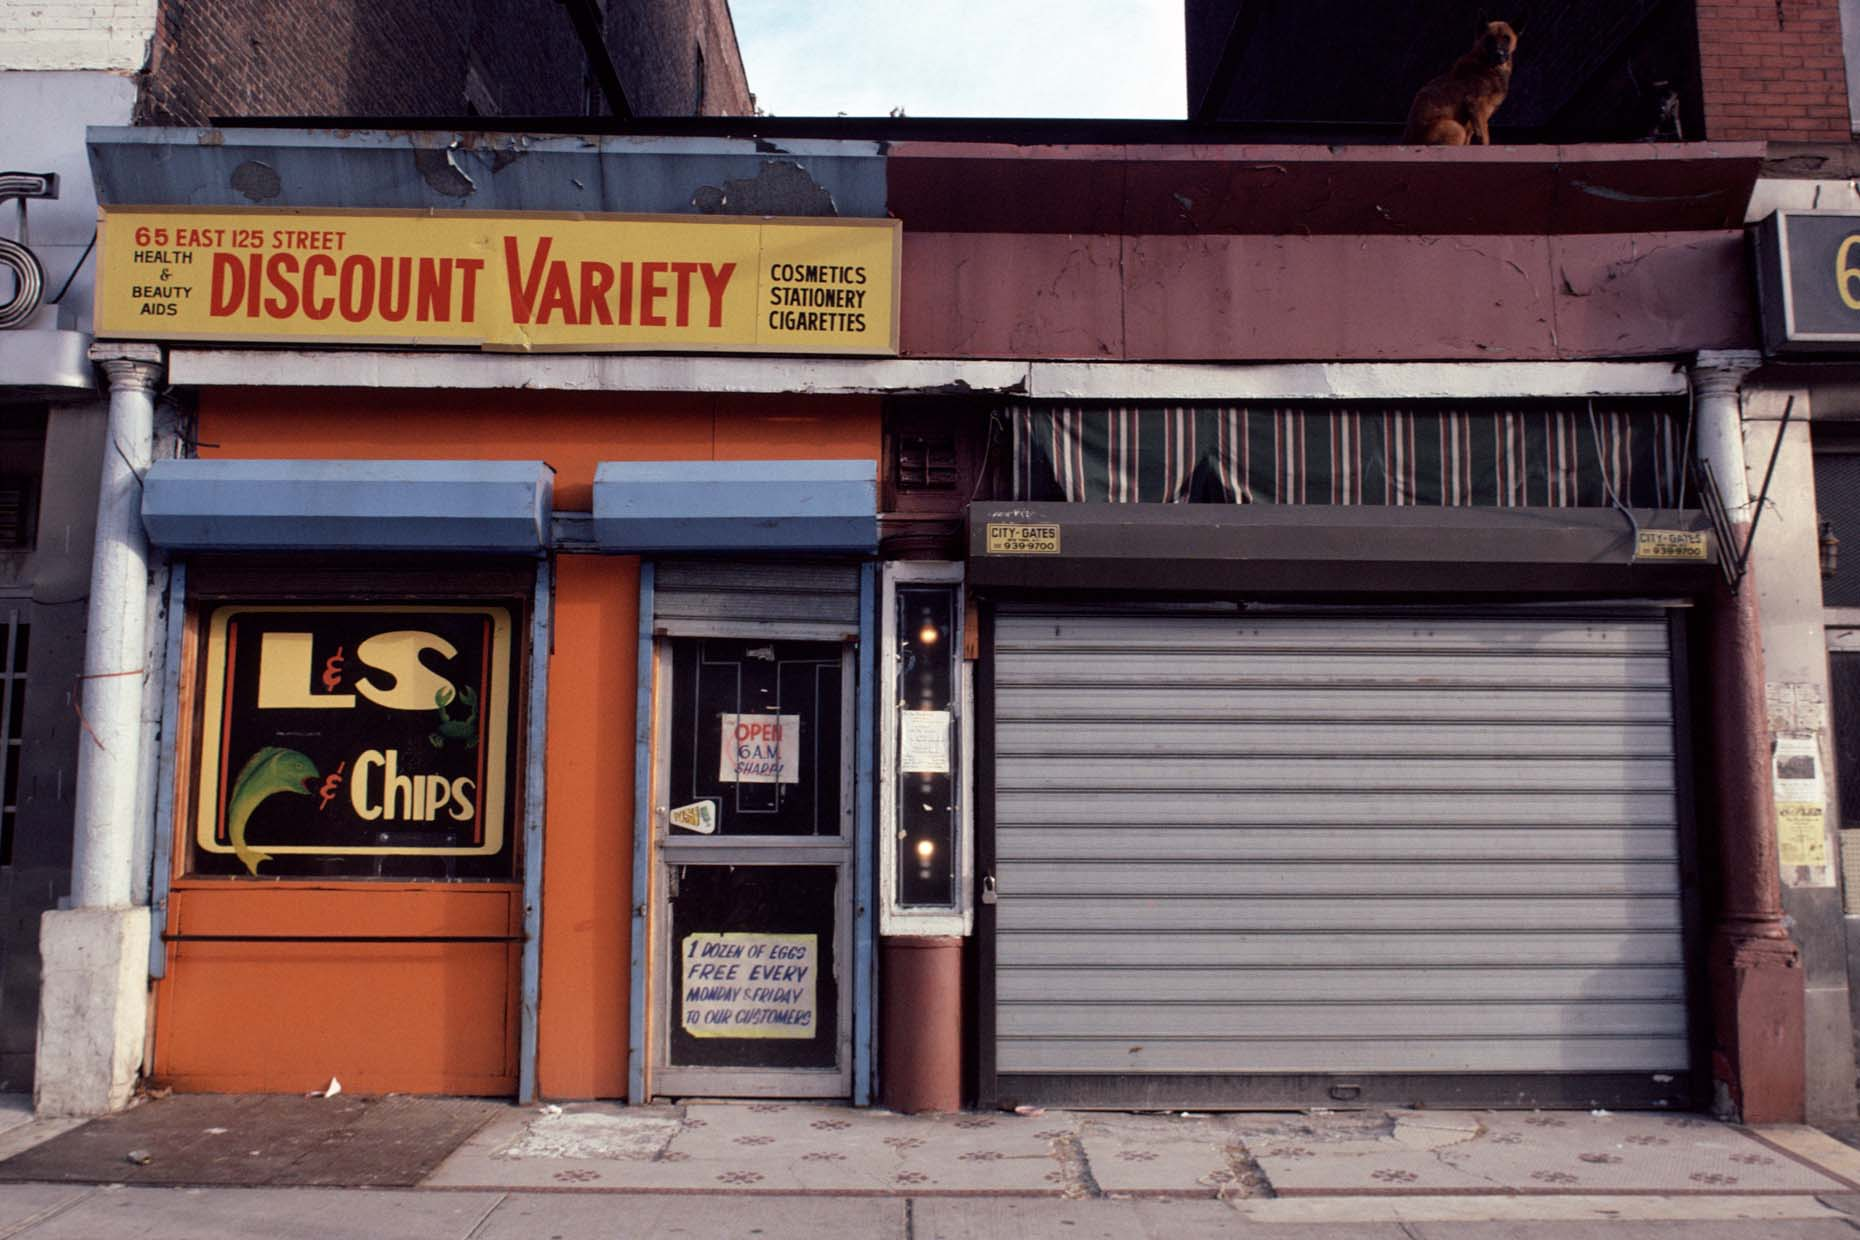 06_65 East 125th St-DUP1., Harlem, 1983_.jpg